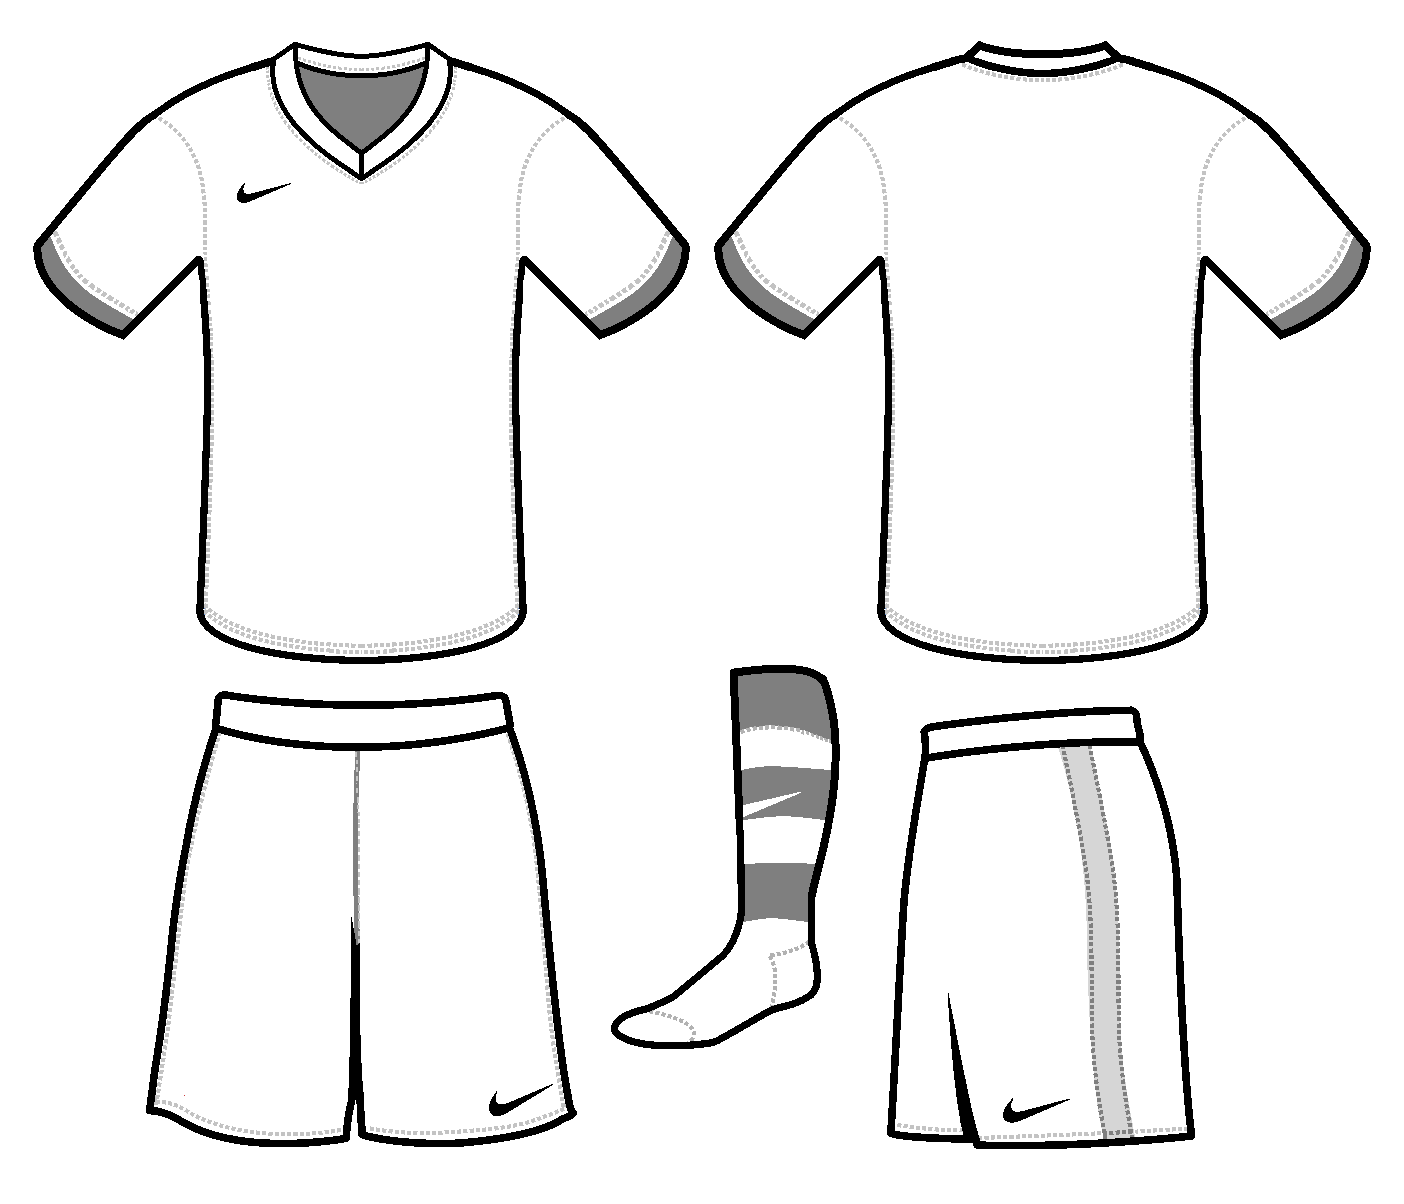 soccer jersey drawing images